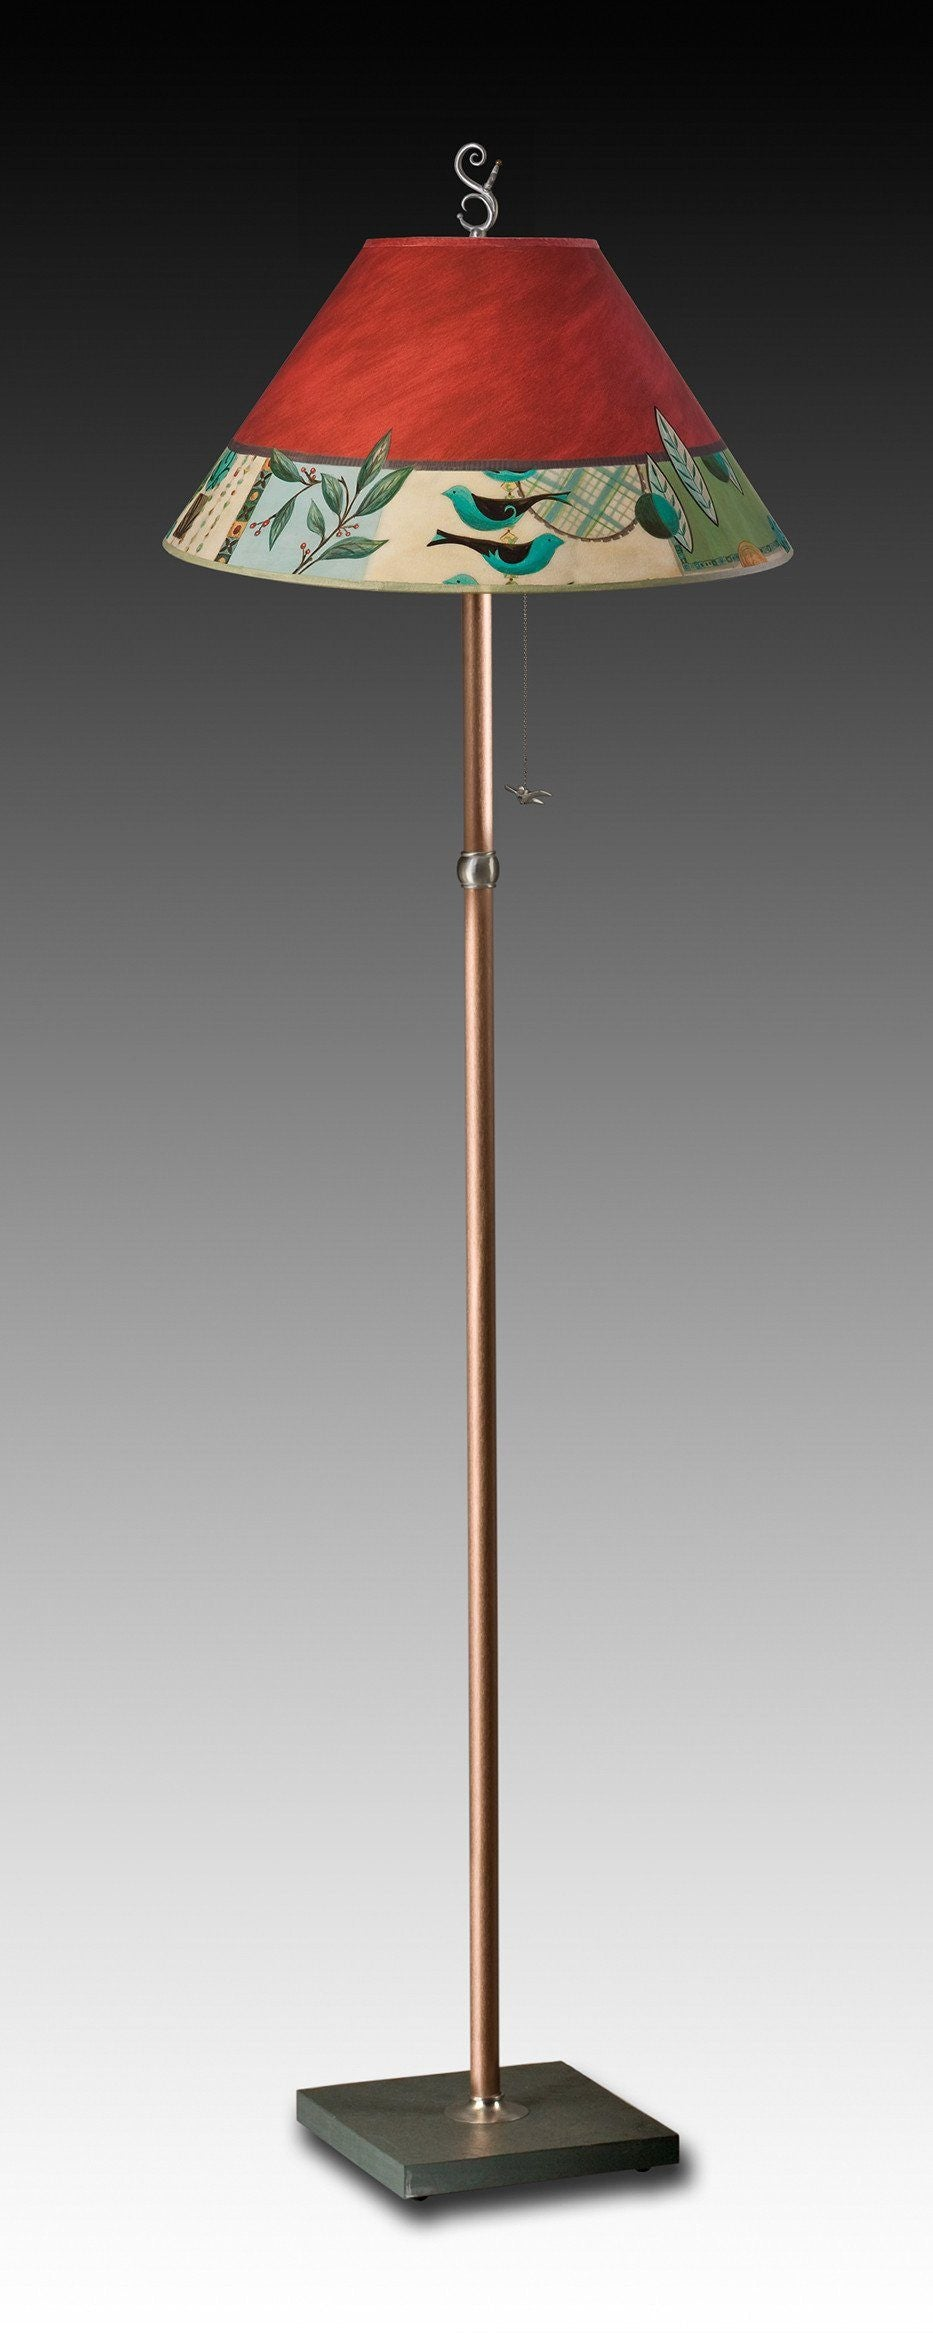 Copper Floor Lamp on Vermont Slate Base with Large Conical Shade in New Capri